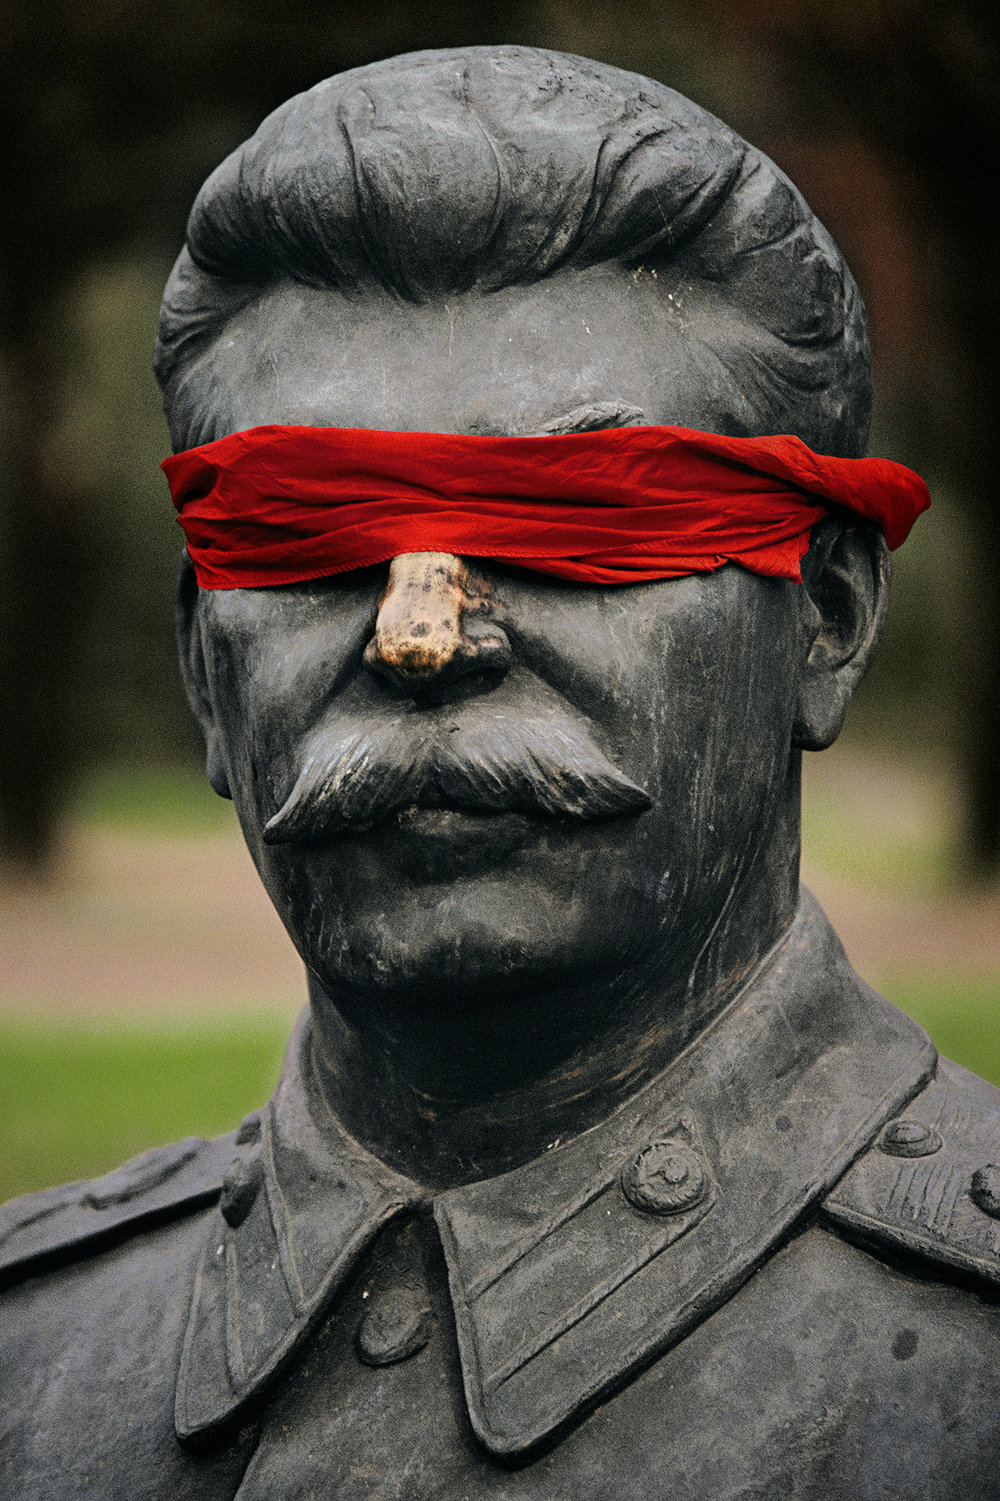 Blindfolded by a child, a statue of Stalin, most feared ruler of the communist era, sits amid other toppled effigies of party leaders now jumbled together in a Moscow park.  Moscow, Russia